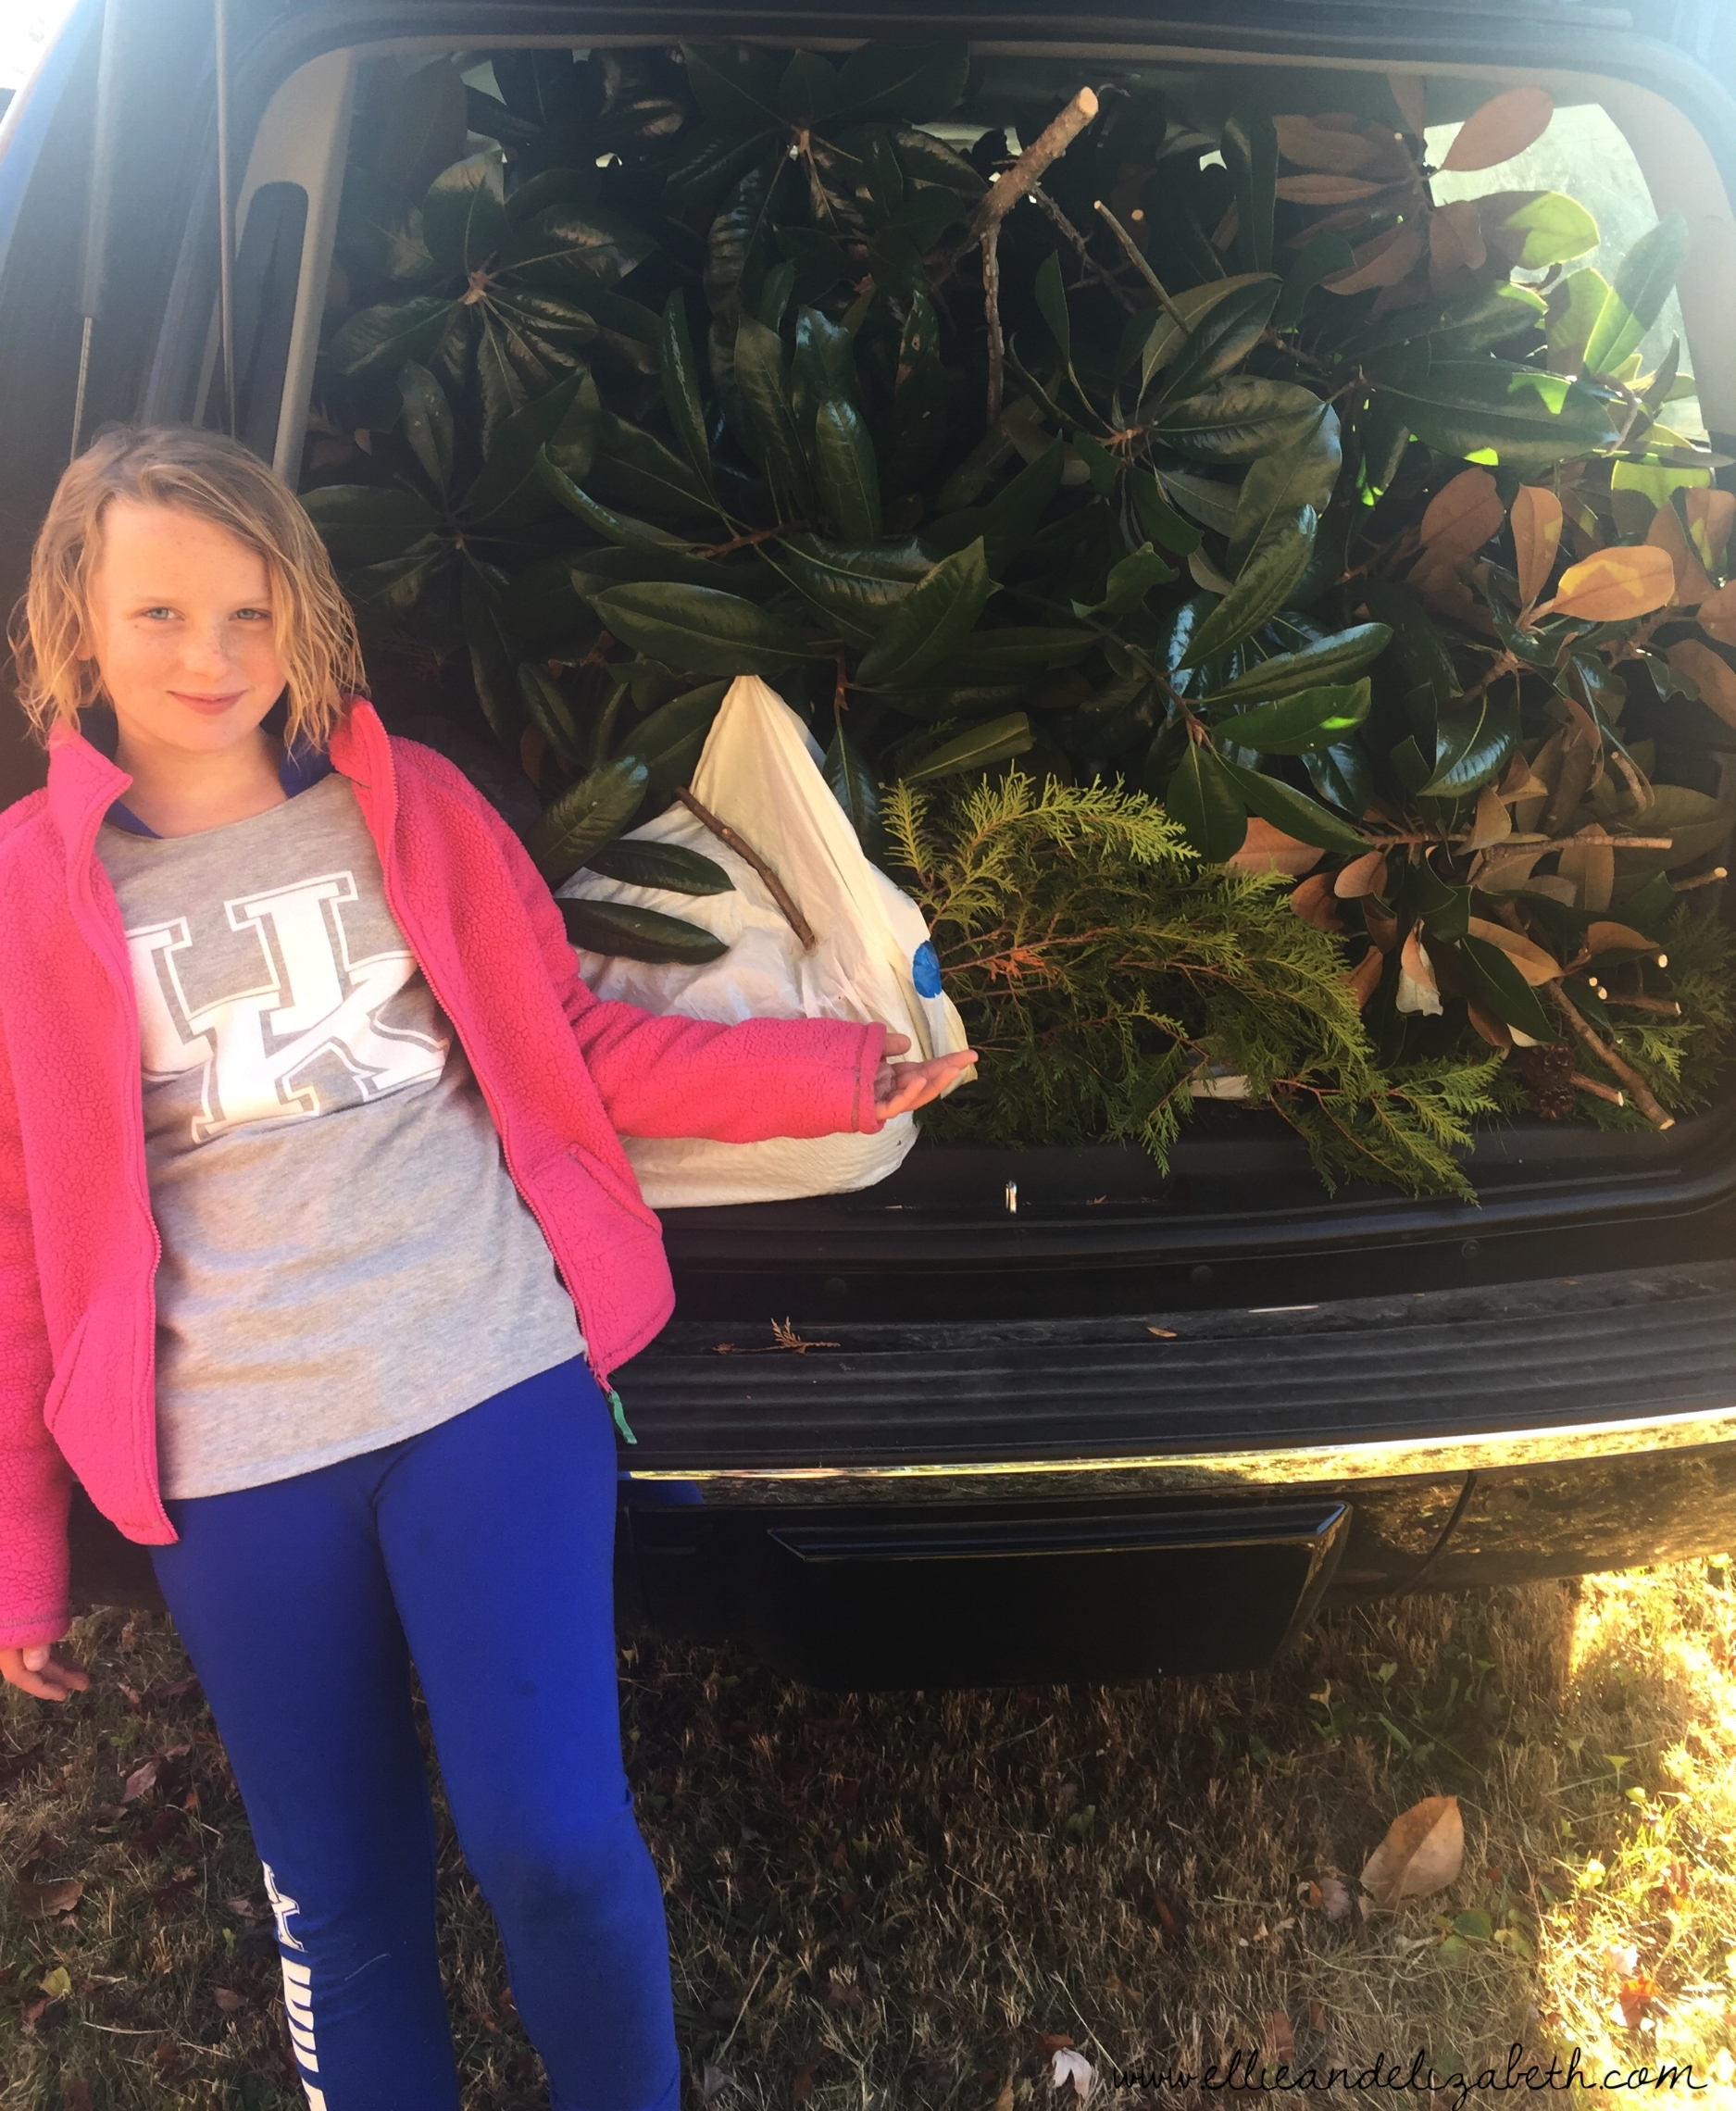 I'm not saying anything about the greenery sticking out of the bottom of the magnolia. I'm just saying that if you see it out and about in a field where it is growing in the wild, it may end up in this car. The niece is an innocent bystander.